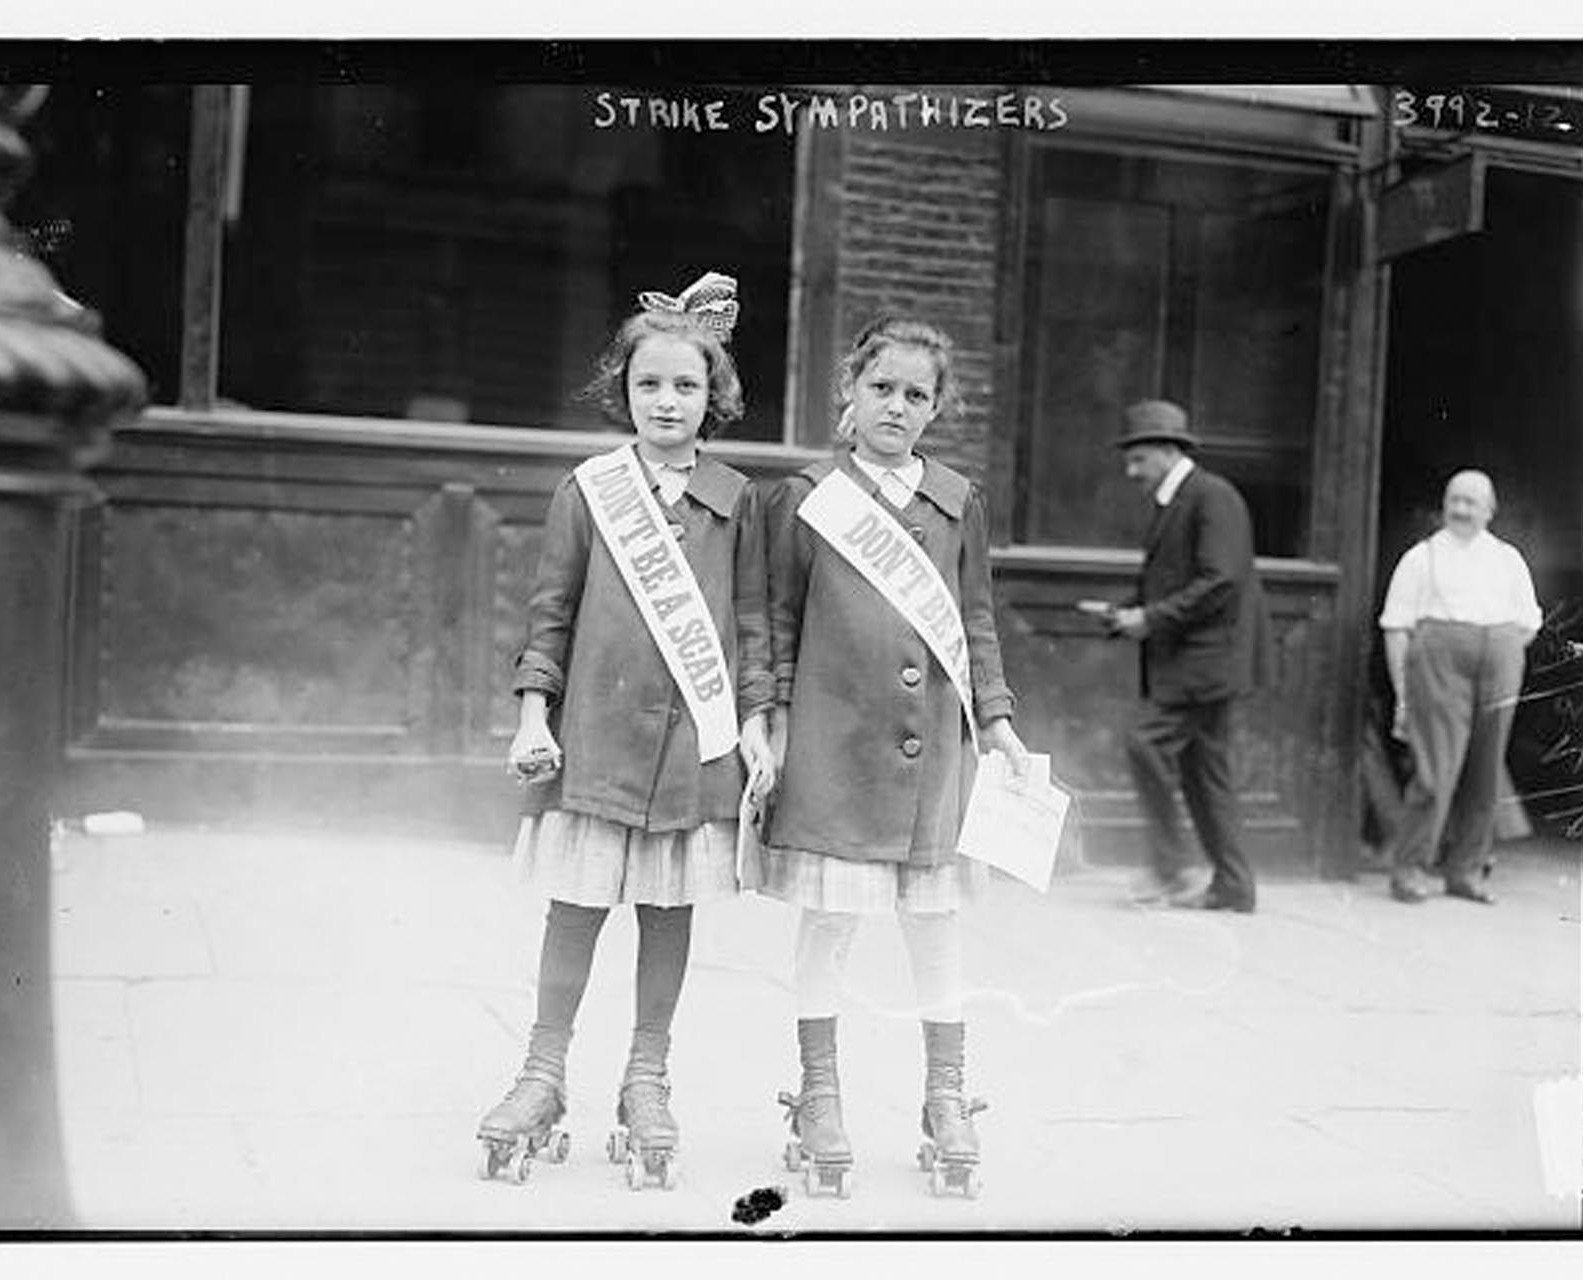 """Two young girls side by side in roller skates and matching jackets and skirts wear sashes that say """"Don't be a scab"""""""